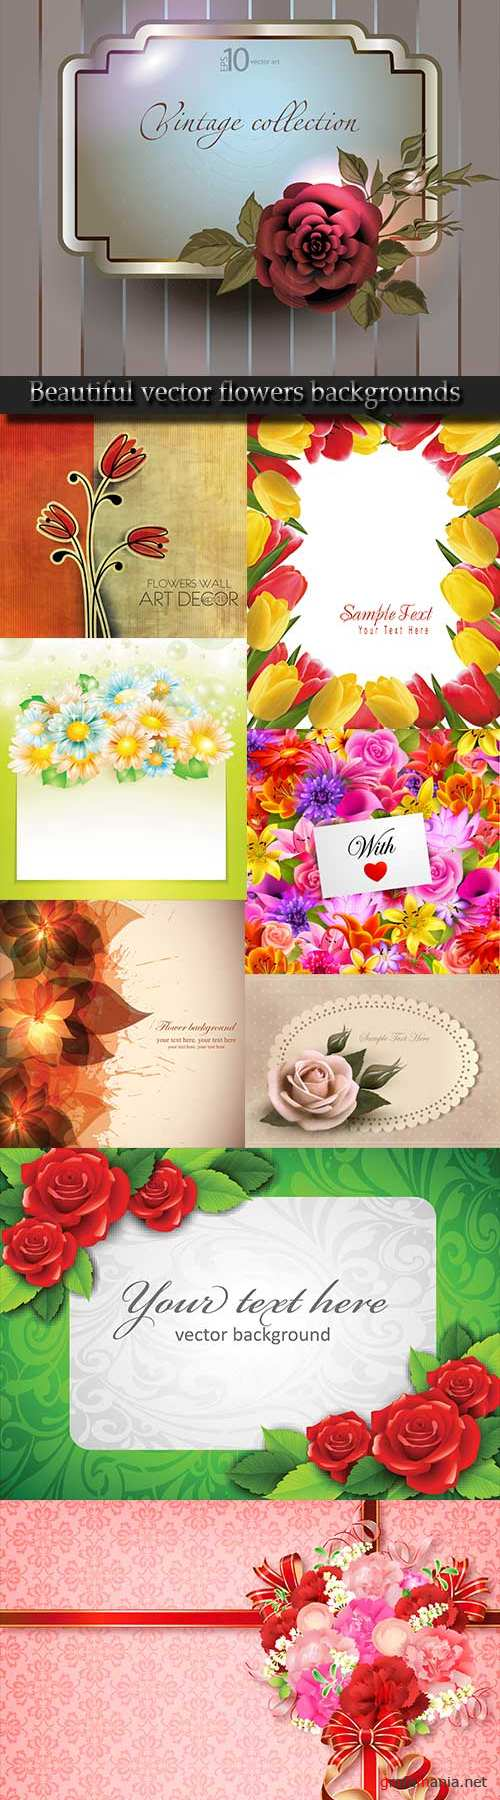 Beautiful vector flowers backgrounds